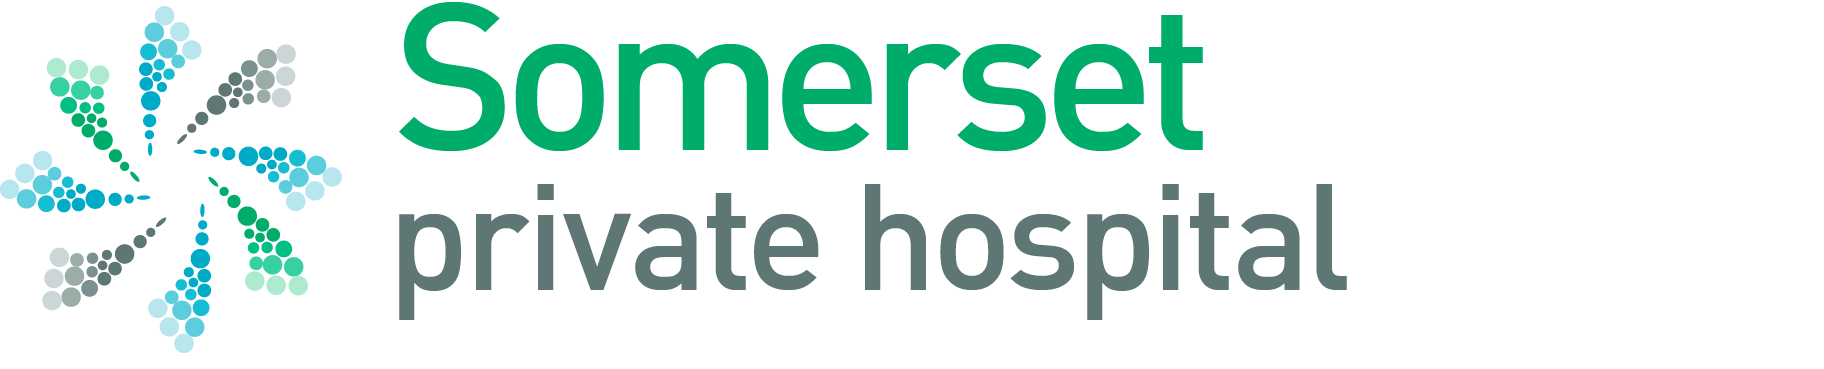 Somerset Private Hospital image